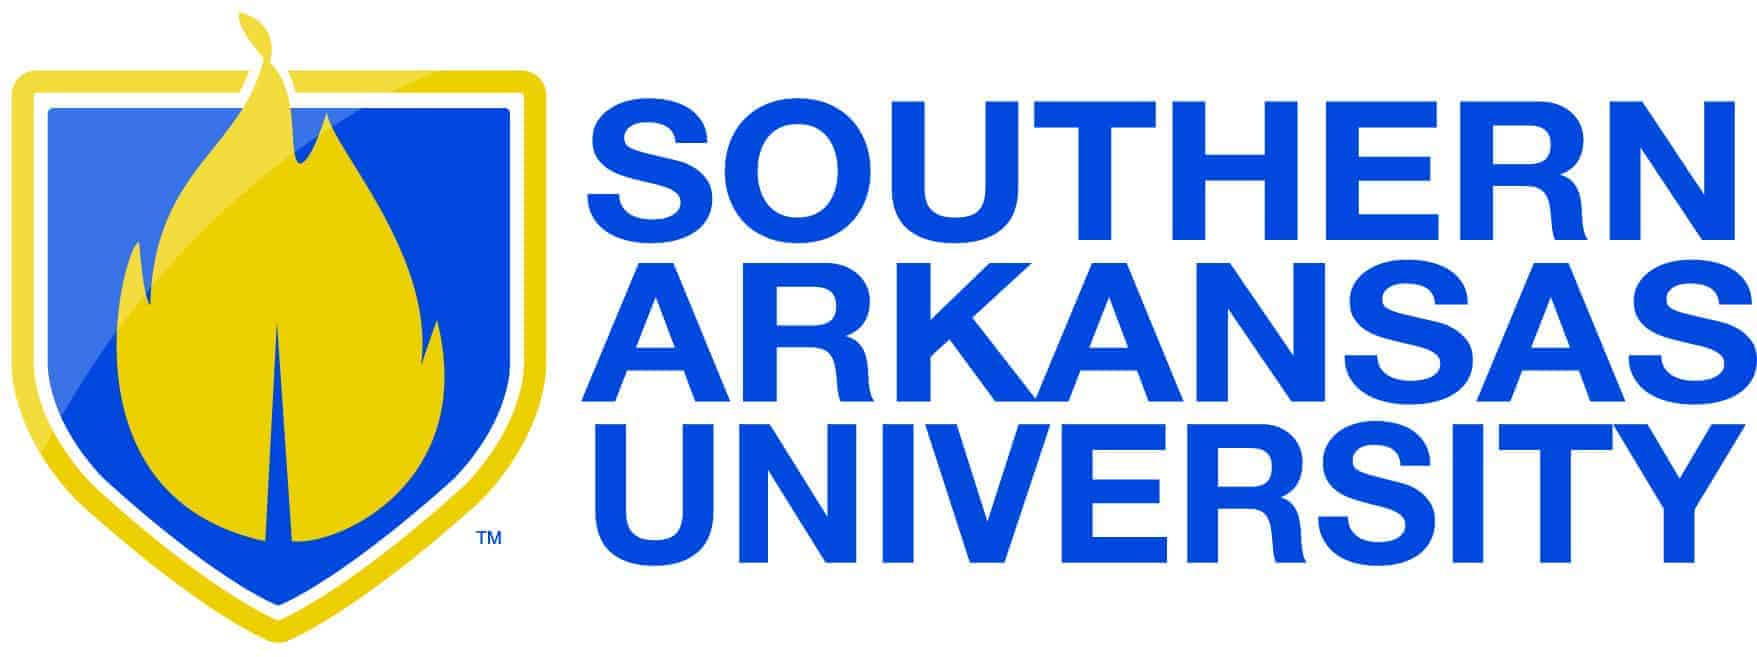 southern arkansas university magnolia logo 8697